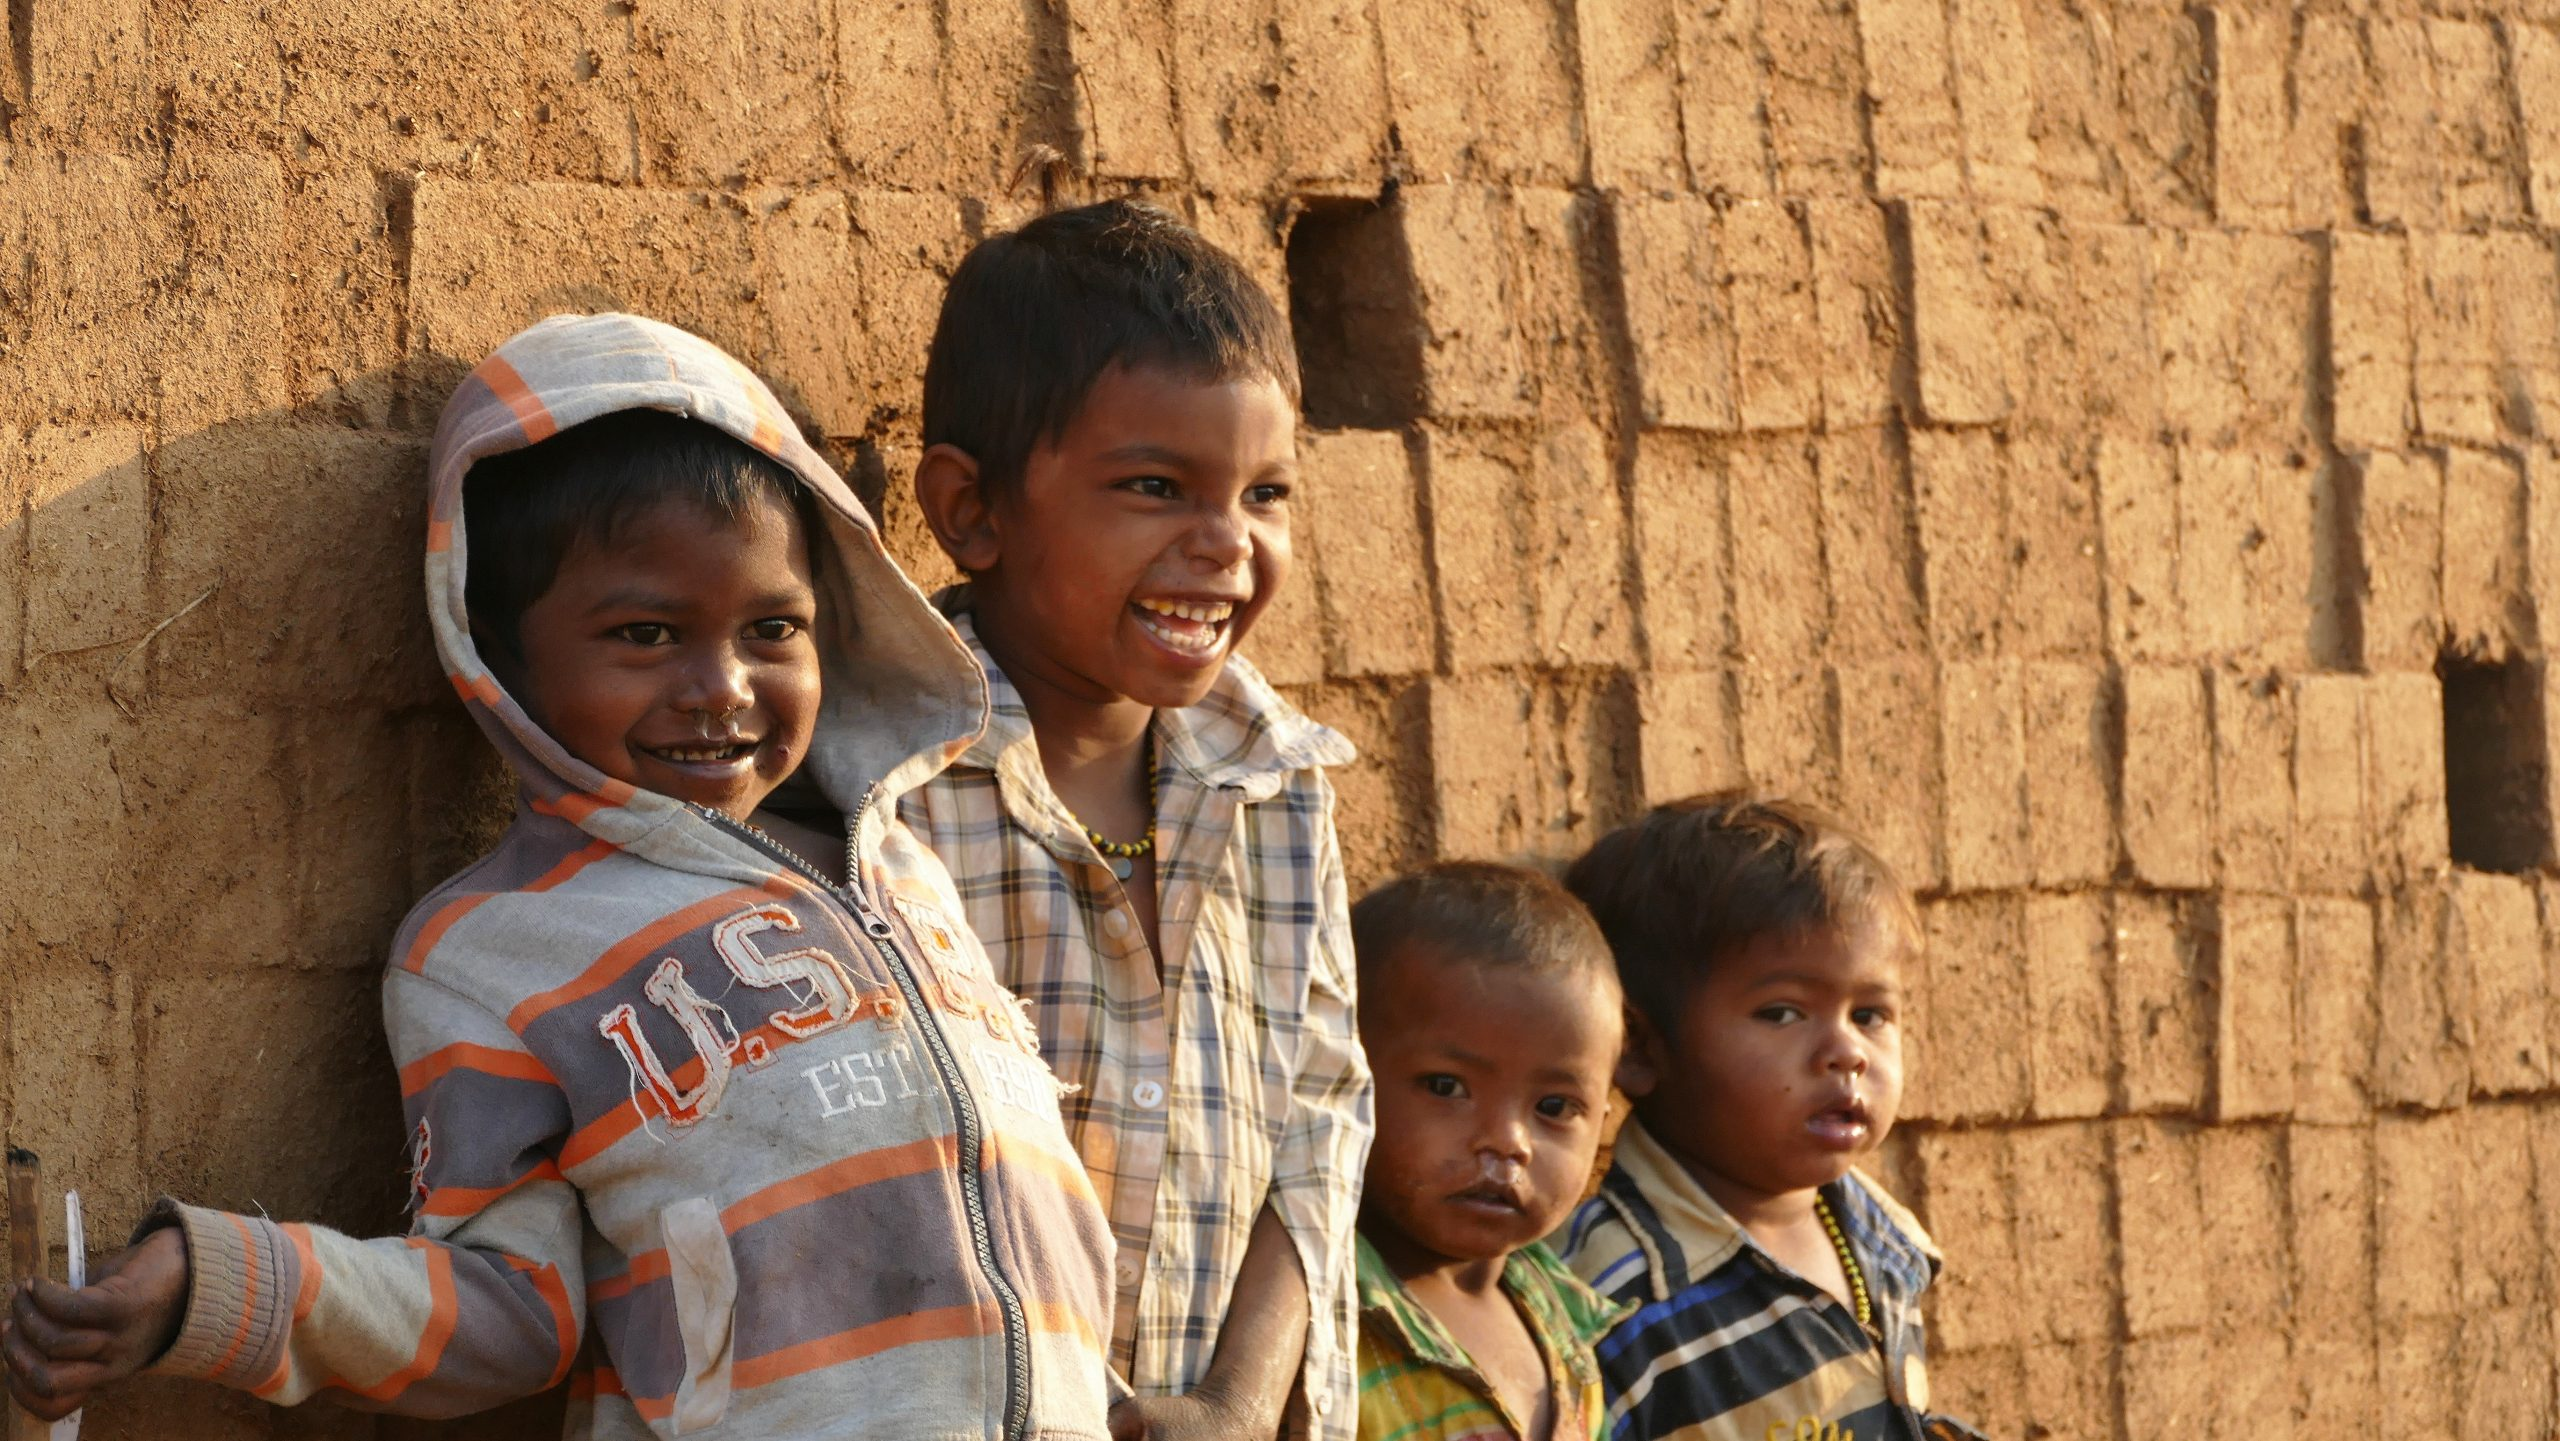 Young children laughing next to a brick kiln in Sonale, India